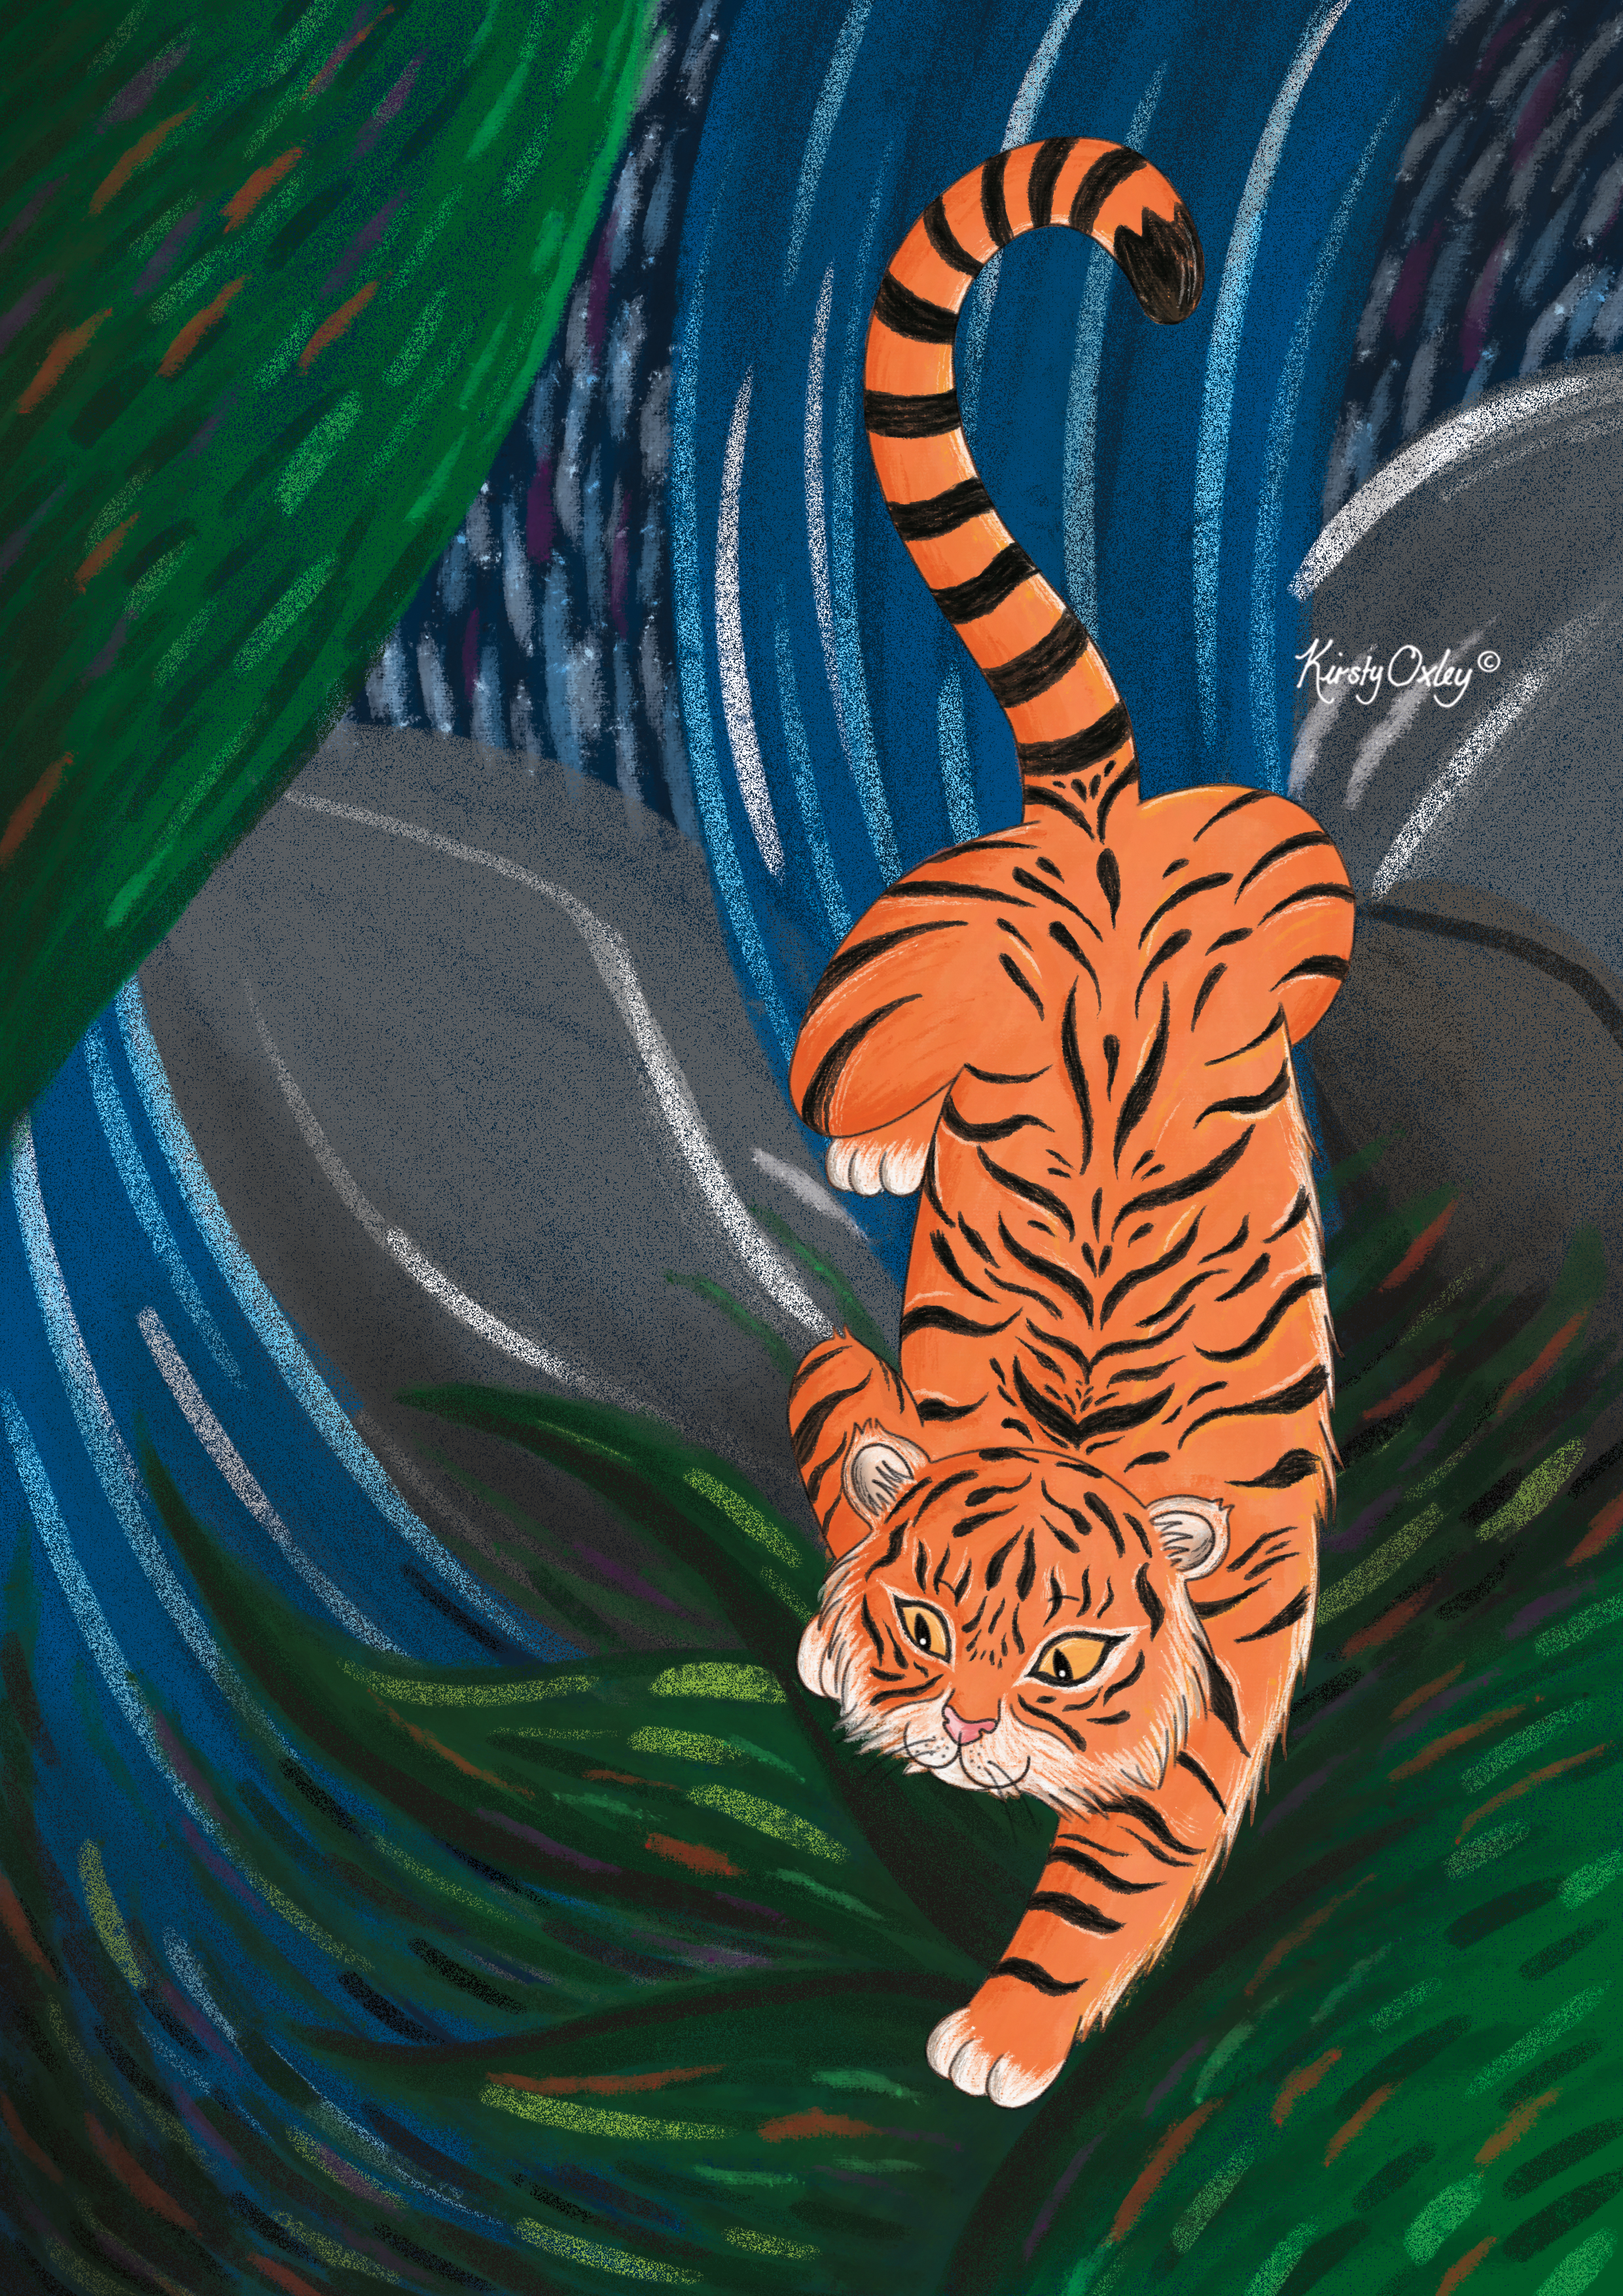 Tiger_Kirsty_Oxley_Illustration.jpg